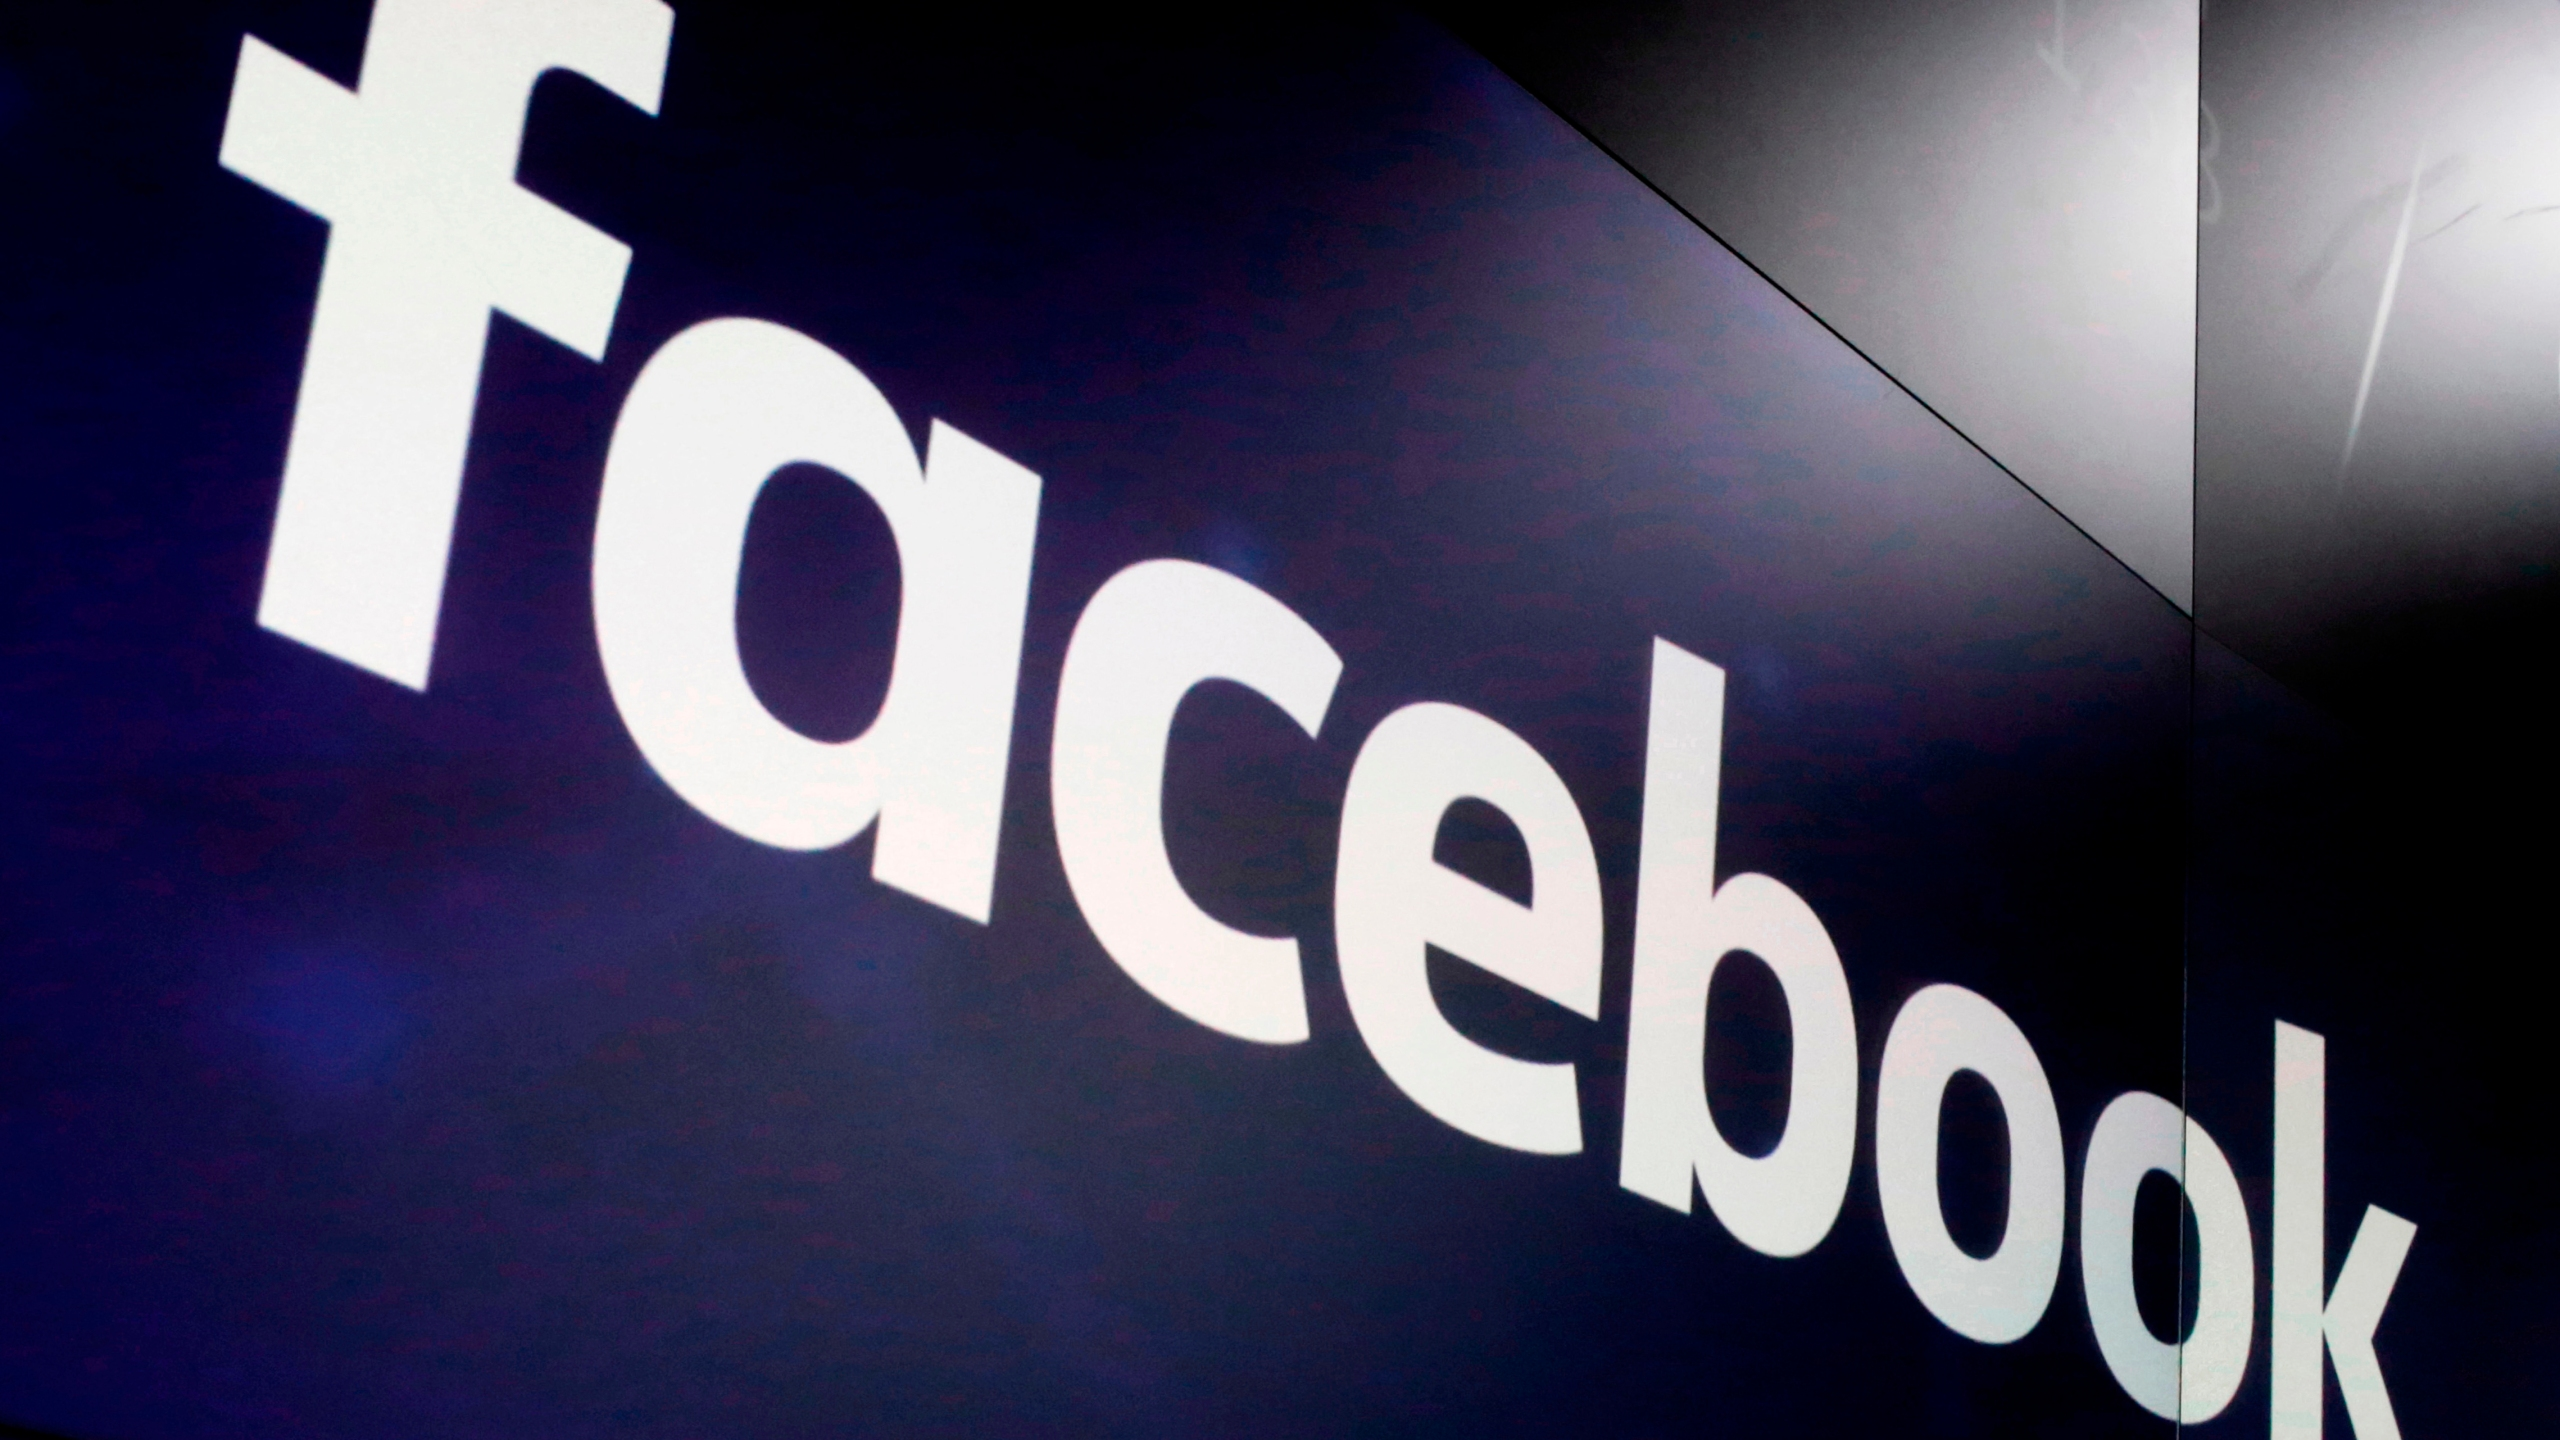 In this March 29, 2018, file photo, the logo for Facebook appears on screens at the Nasdaq MarketSite in New York's Times Square. A senior Federal Trade Commission official is criticizing Facebook's move to shut down the personal accounts of two academic researchers and terminate their probe into misinformation spread through political ads on the social network, Thursday, Aug. 5, 2021. (AP Photo/Richard Drew, File)